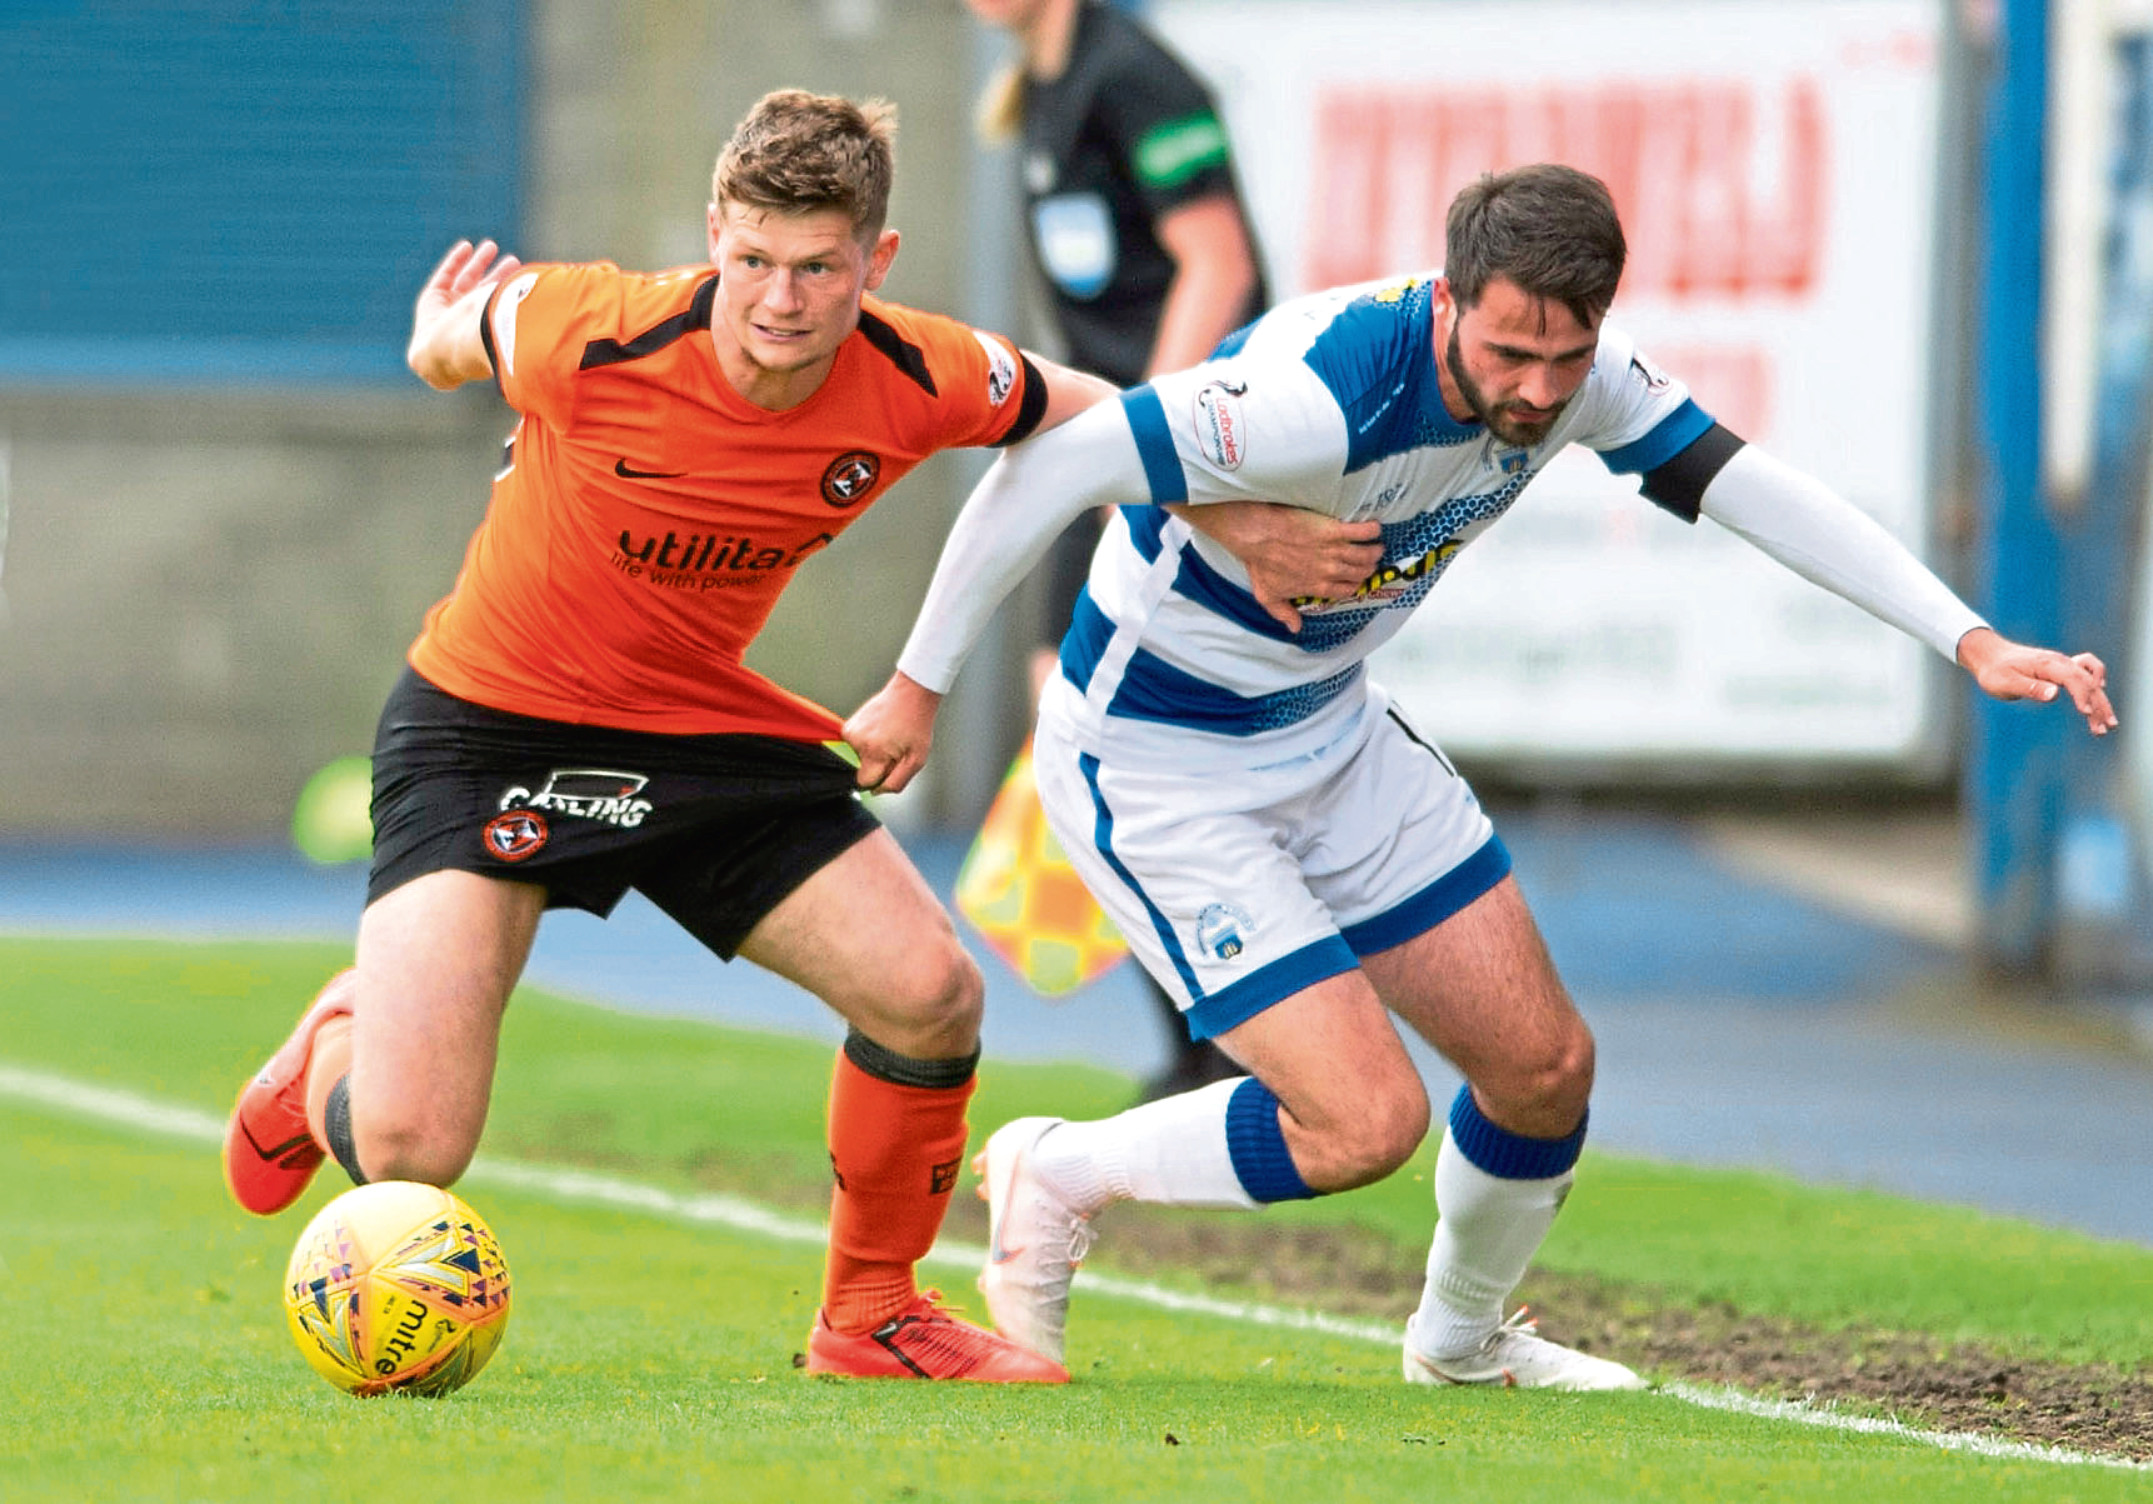 Cammy Smith returned to the Dundee United starting XI on Saturday after six weeks out injured. They lost out to Morton but the 23-year-old plan to be at his best for the upcoming play-offs